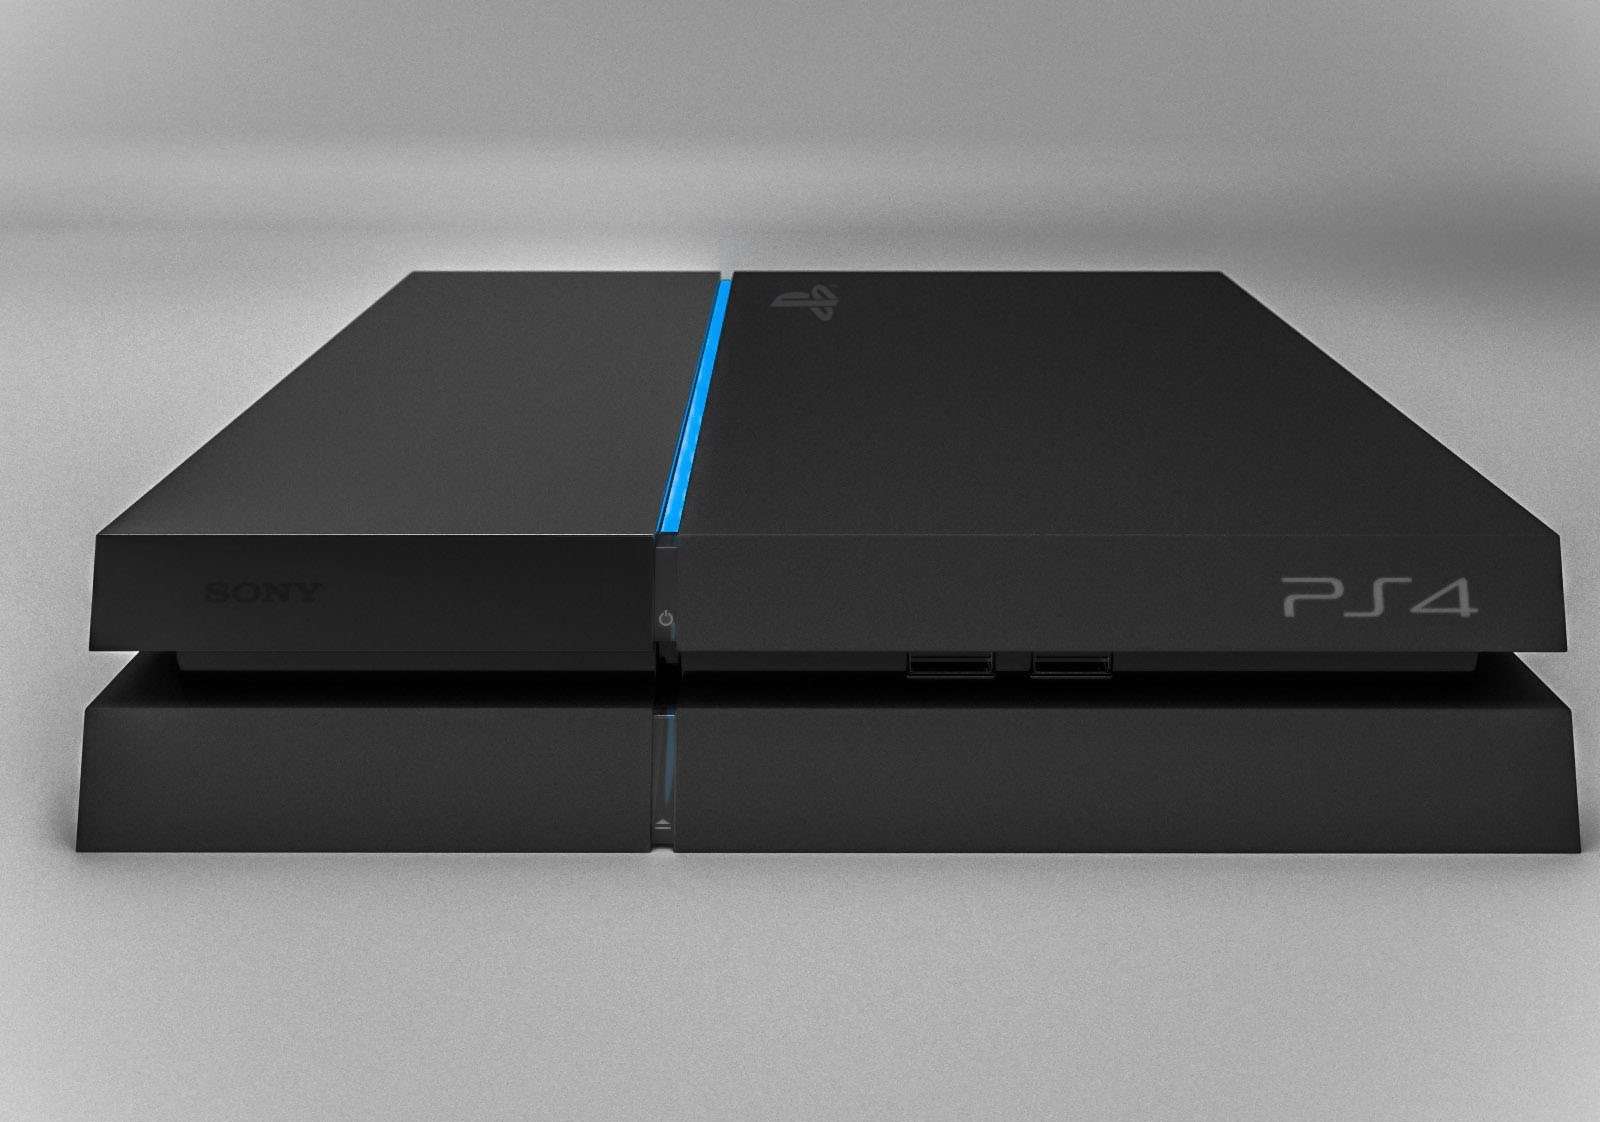 Official PS4 Unboxing Video Released